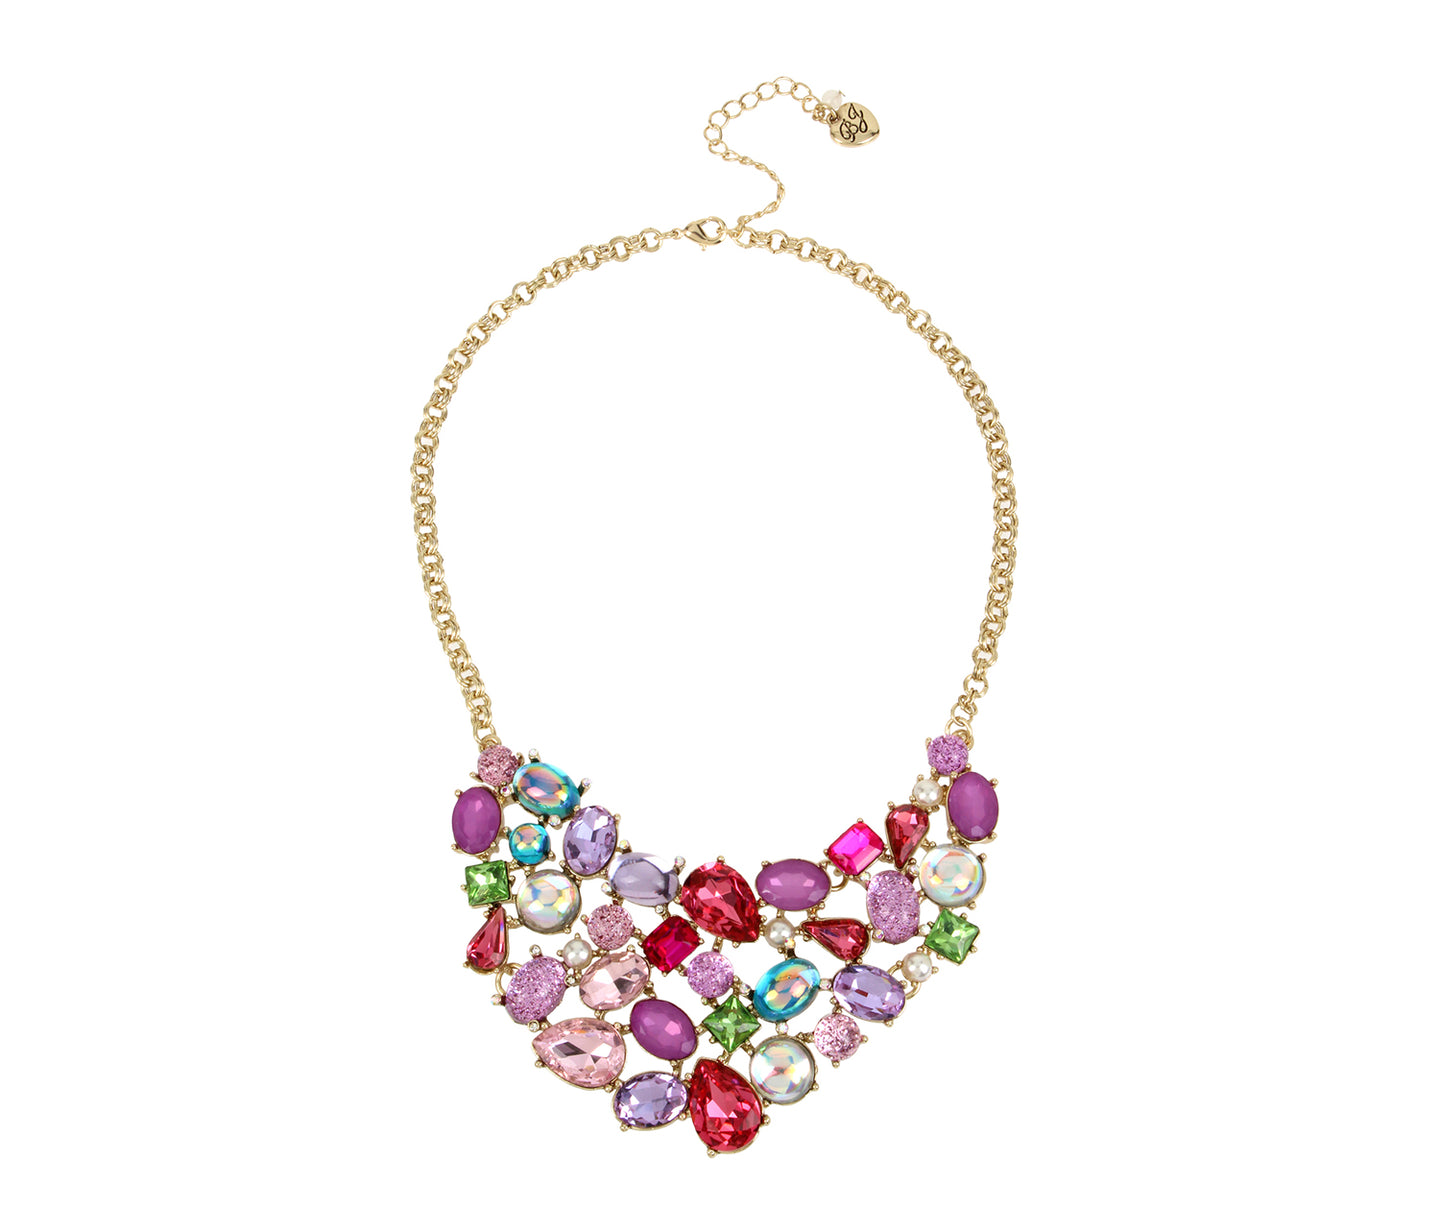 BETSEYS FUNFETTI BIB NECKLACE MULTI - JEWELRY - Betsey Johnson